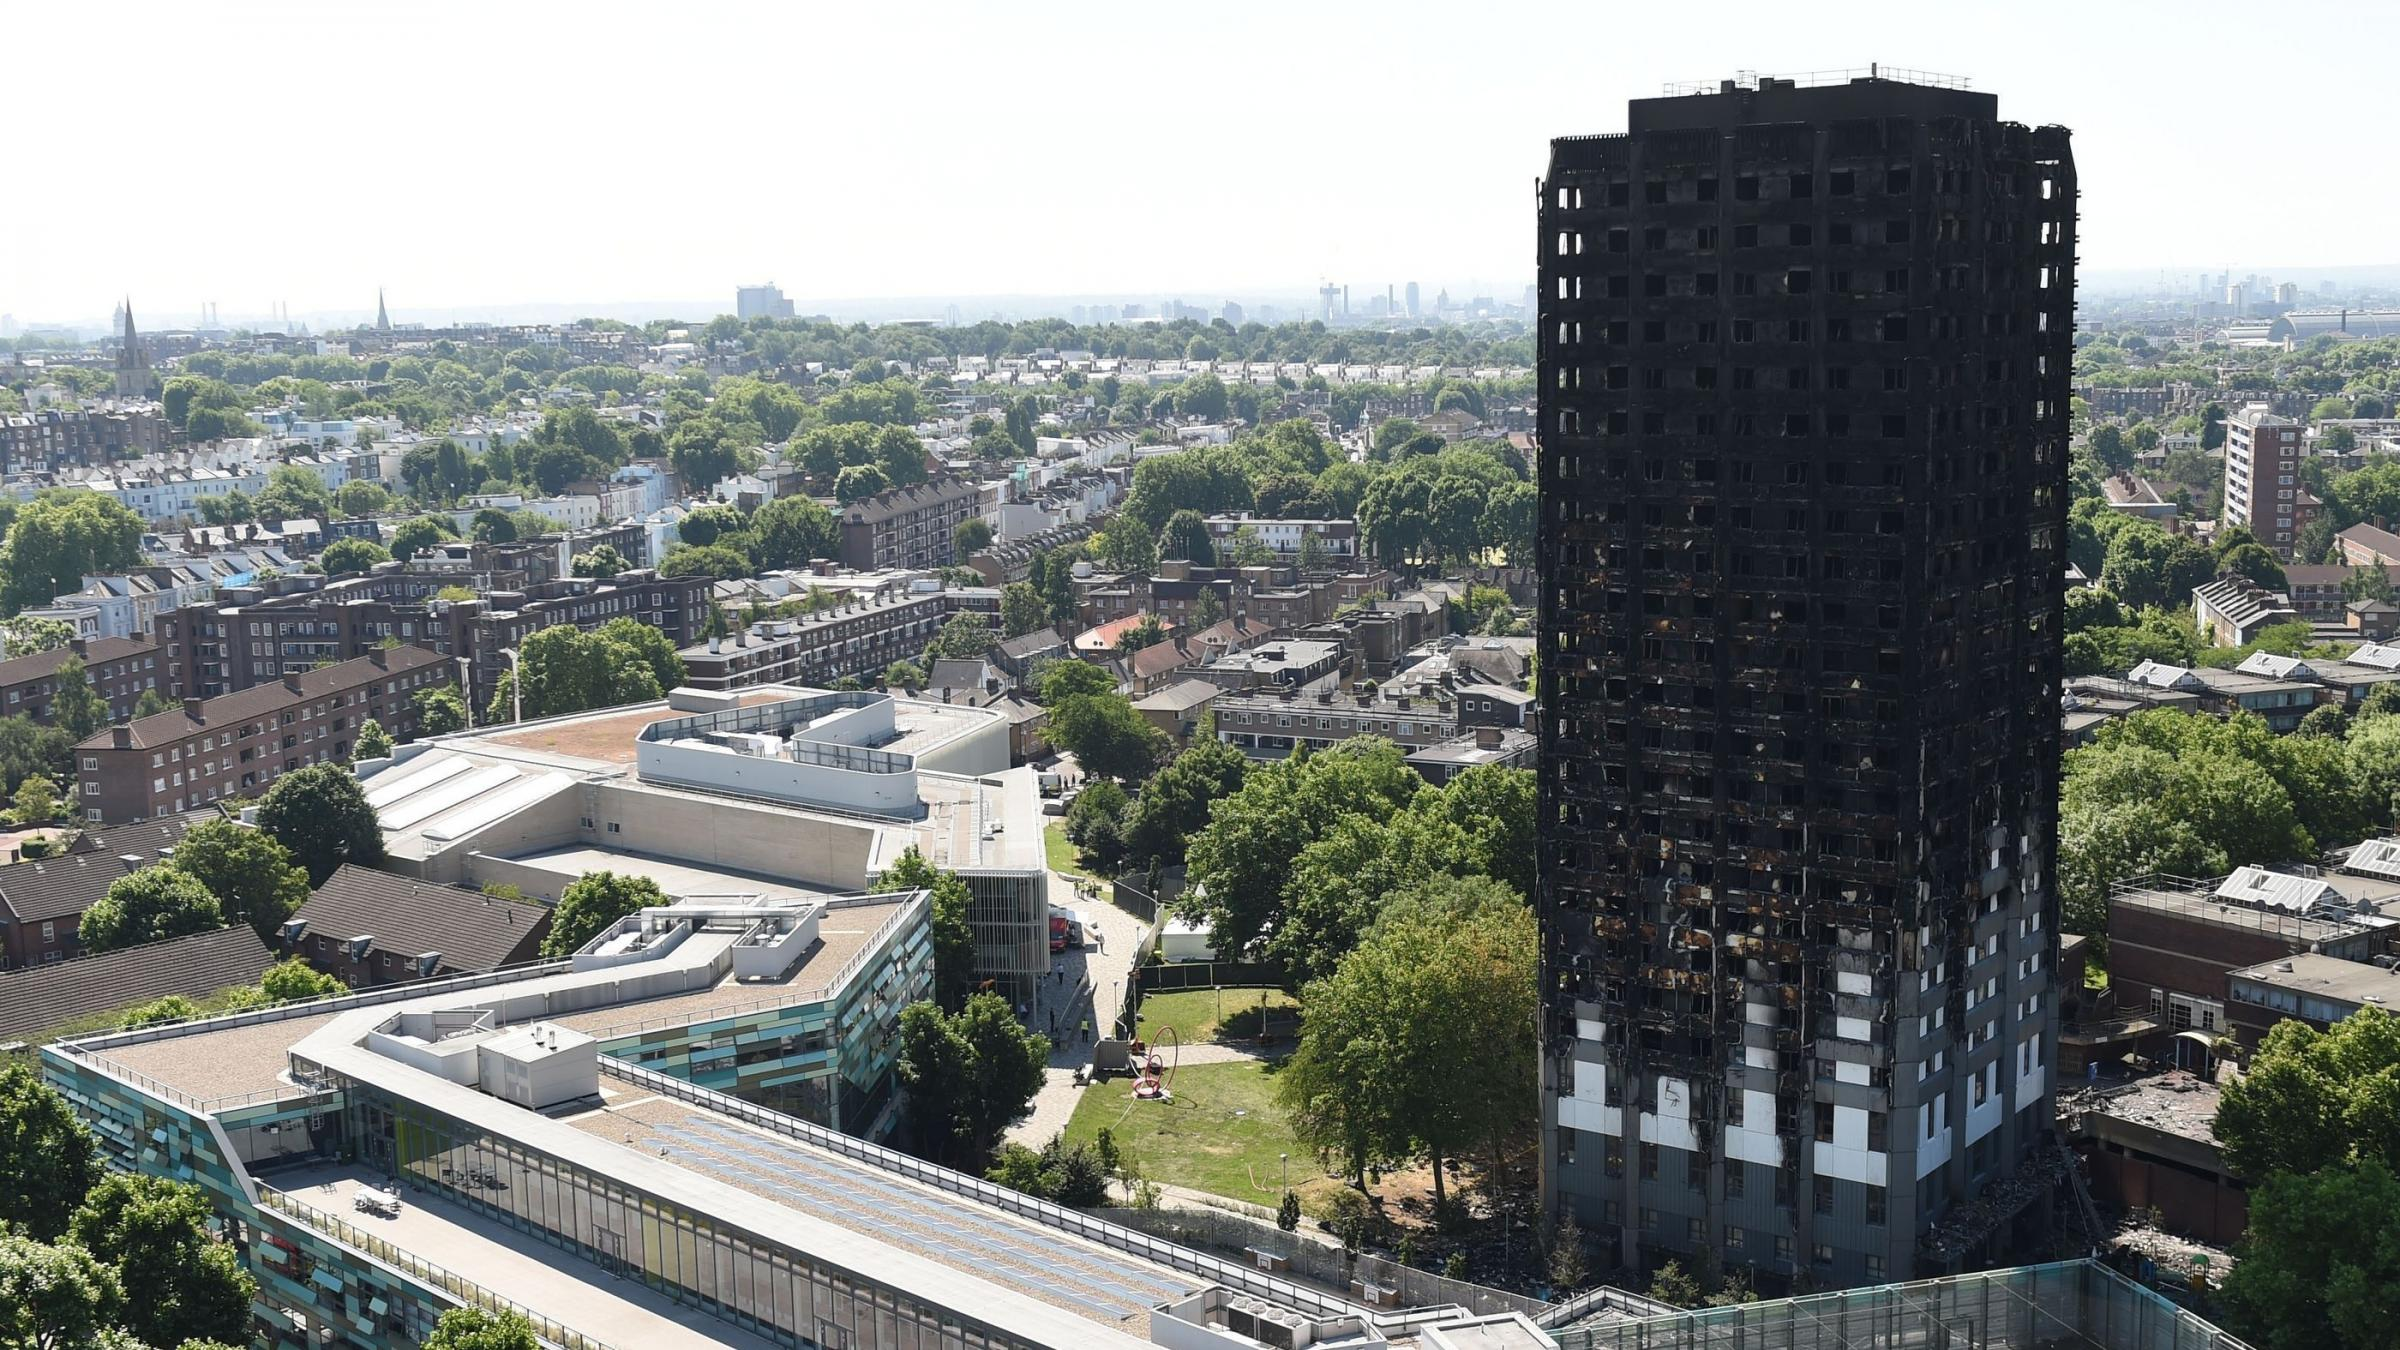 UK: Pressure on May as Grenfell Tower death toll rises